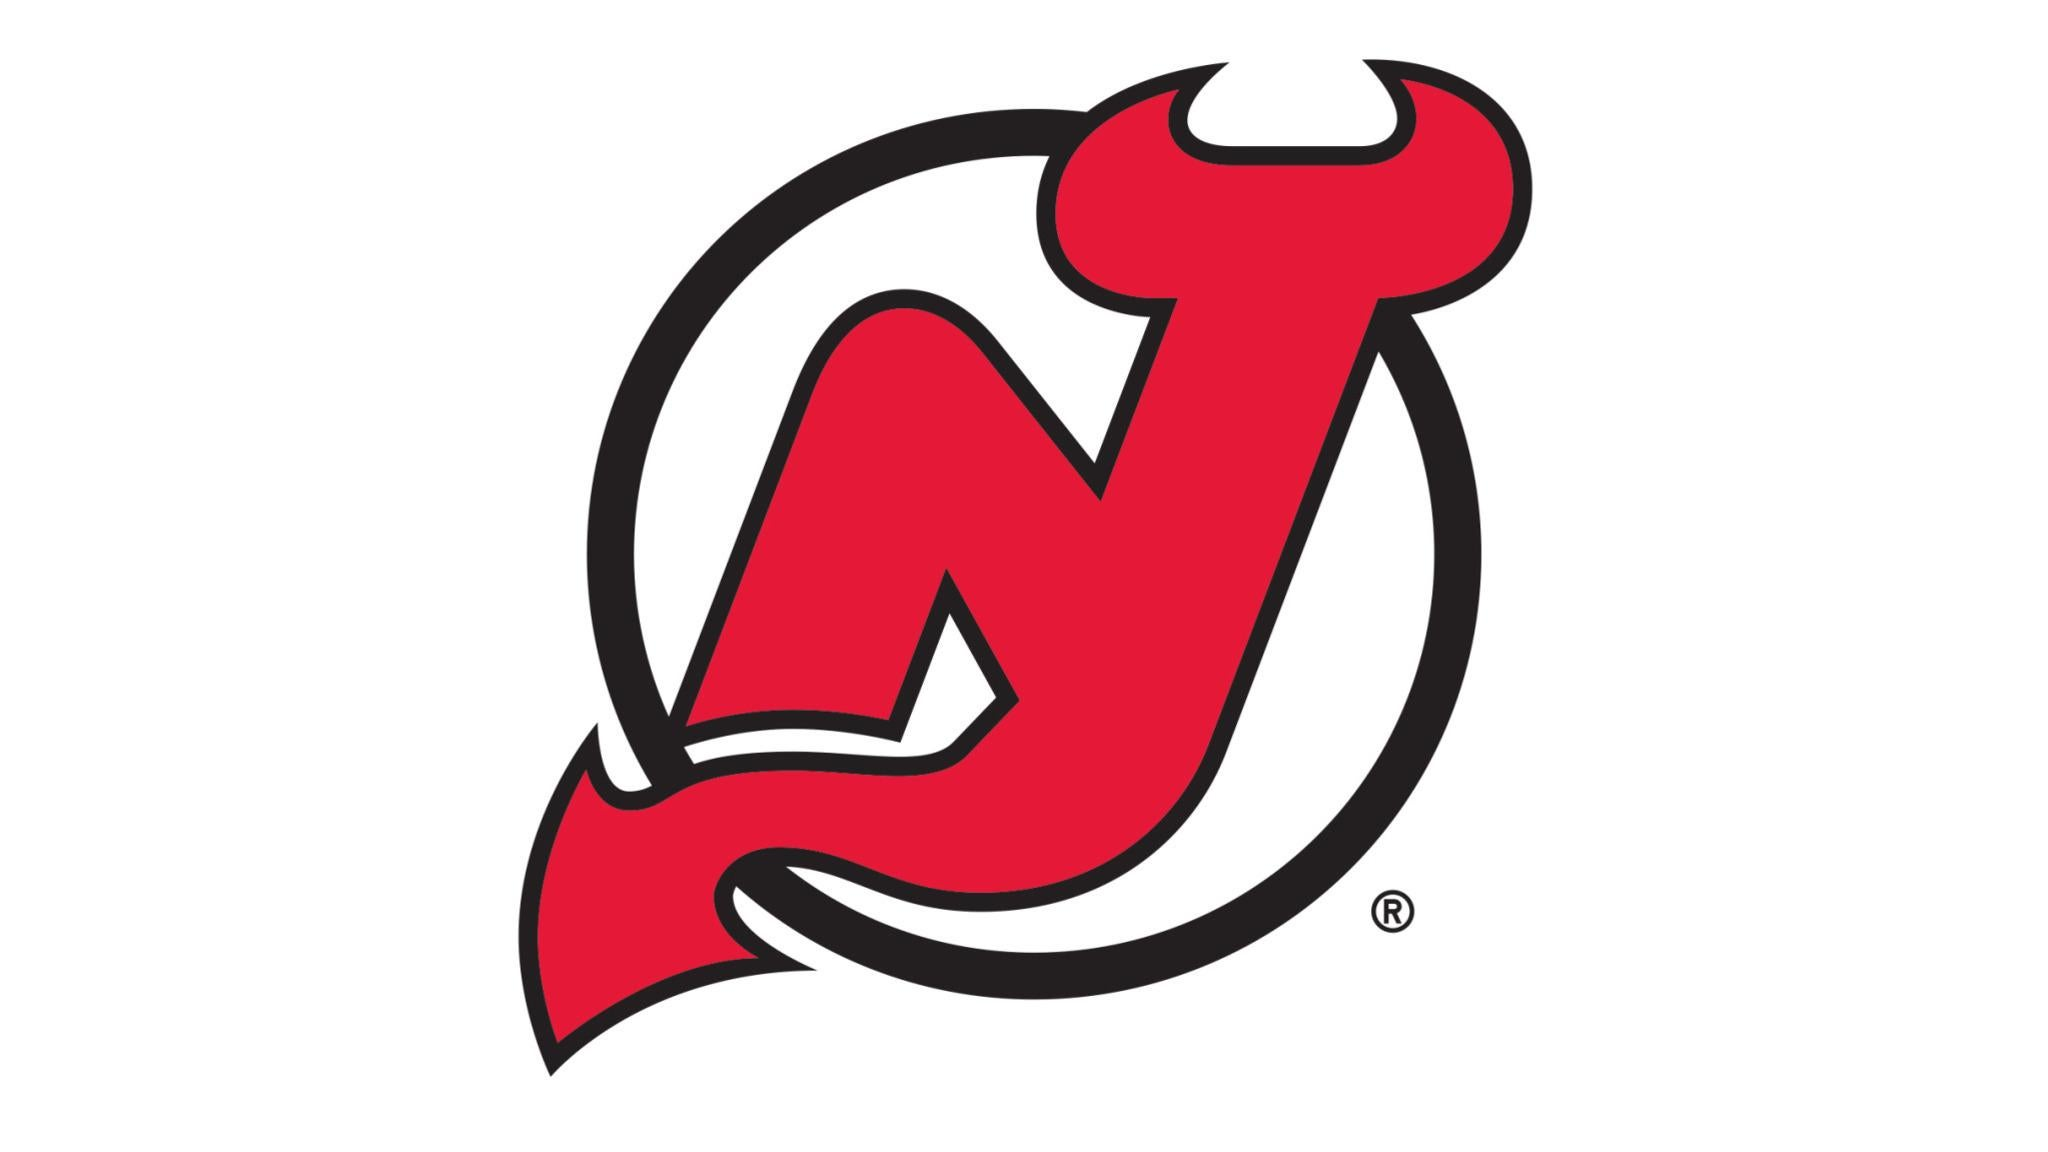 New Jersey Devils vs. Arizona Coyotes at Prudential Center